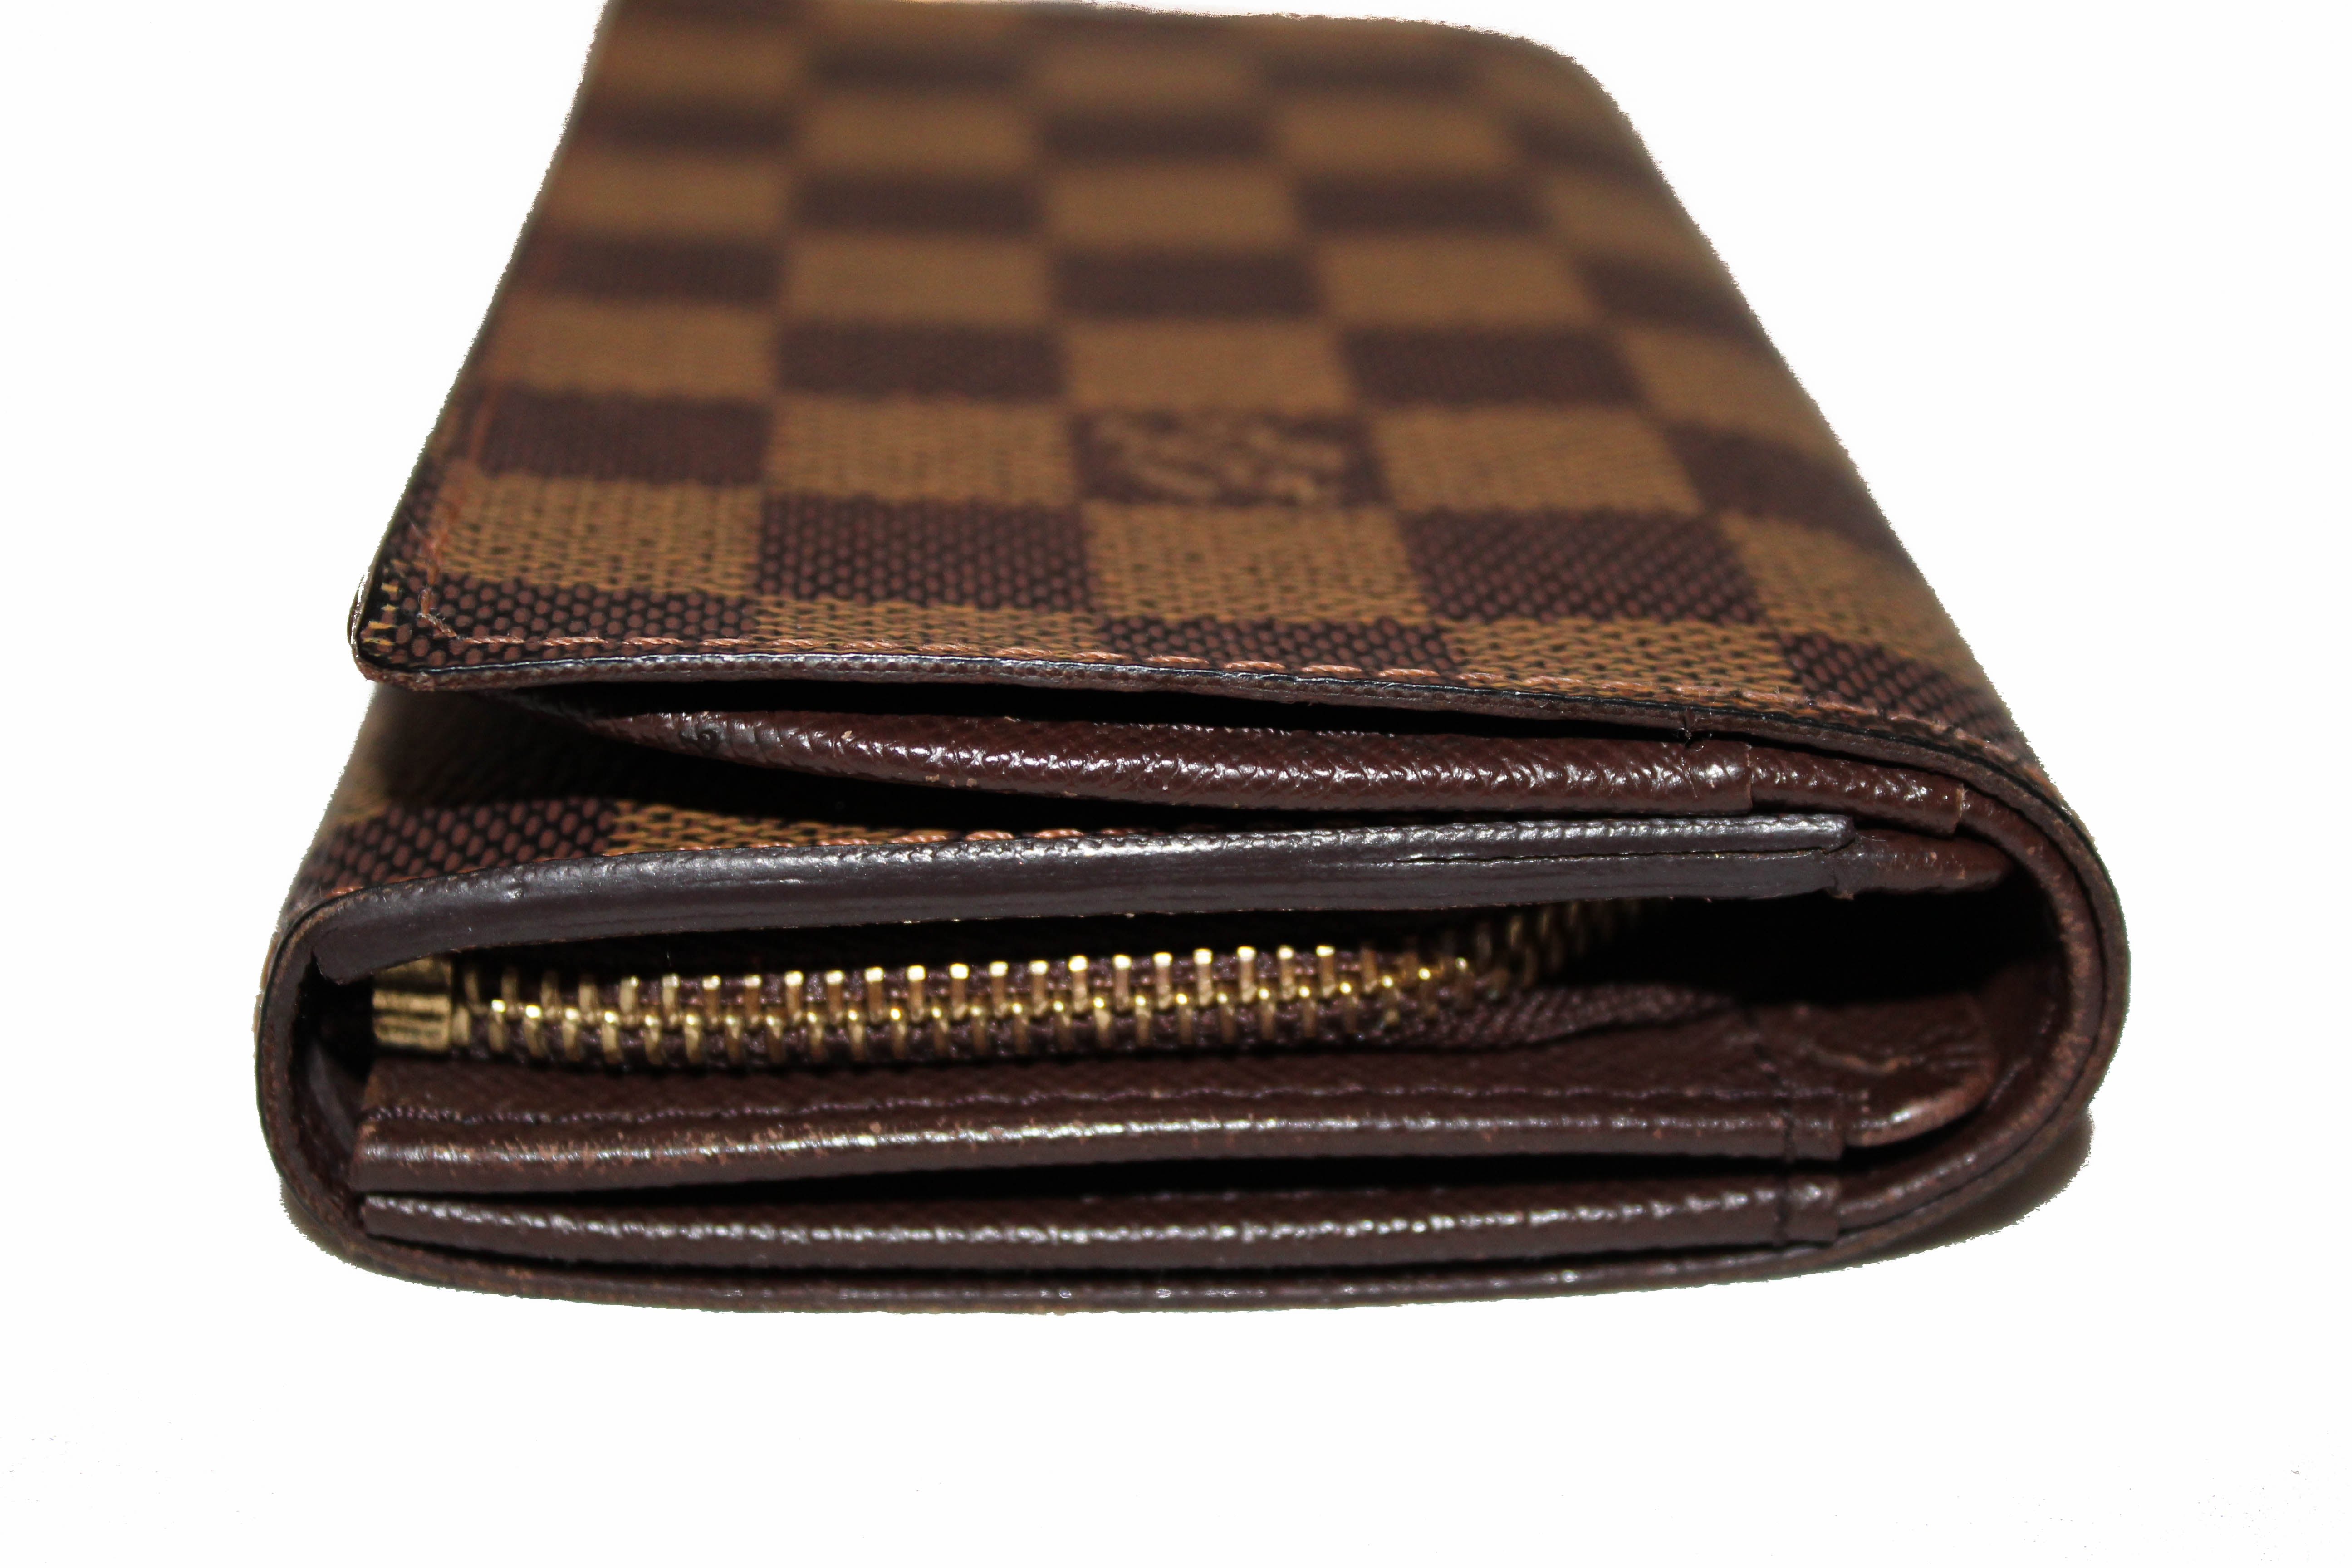 Authentic Louis Vuitton Damier Ebene Tressor Wallet